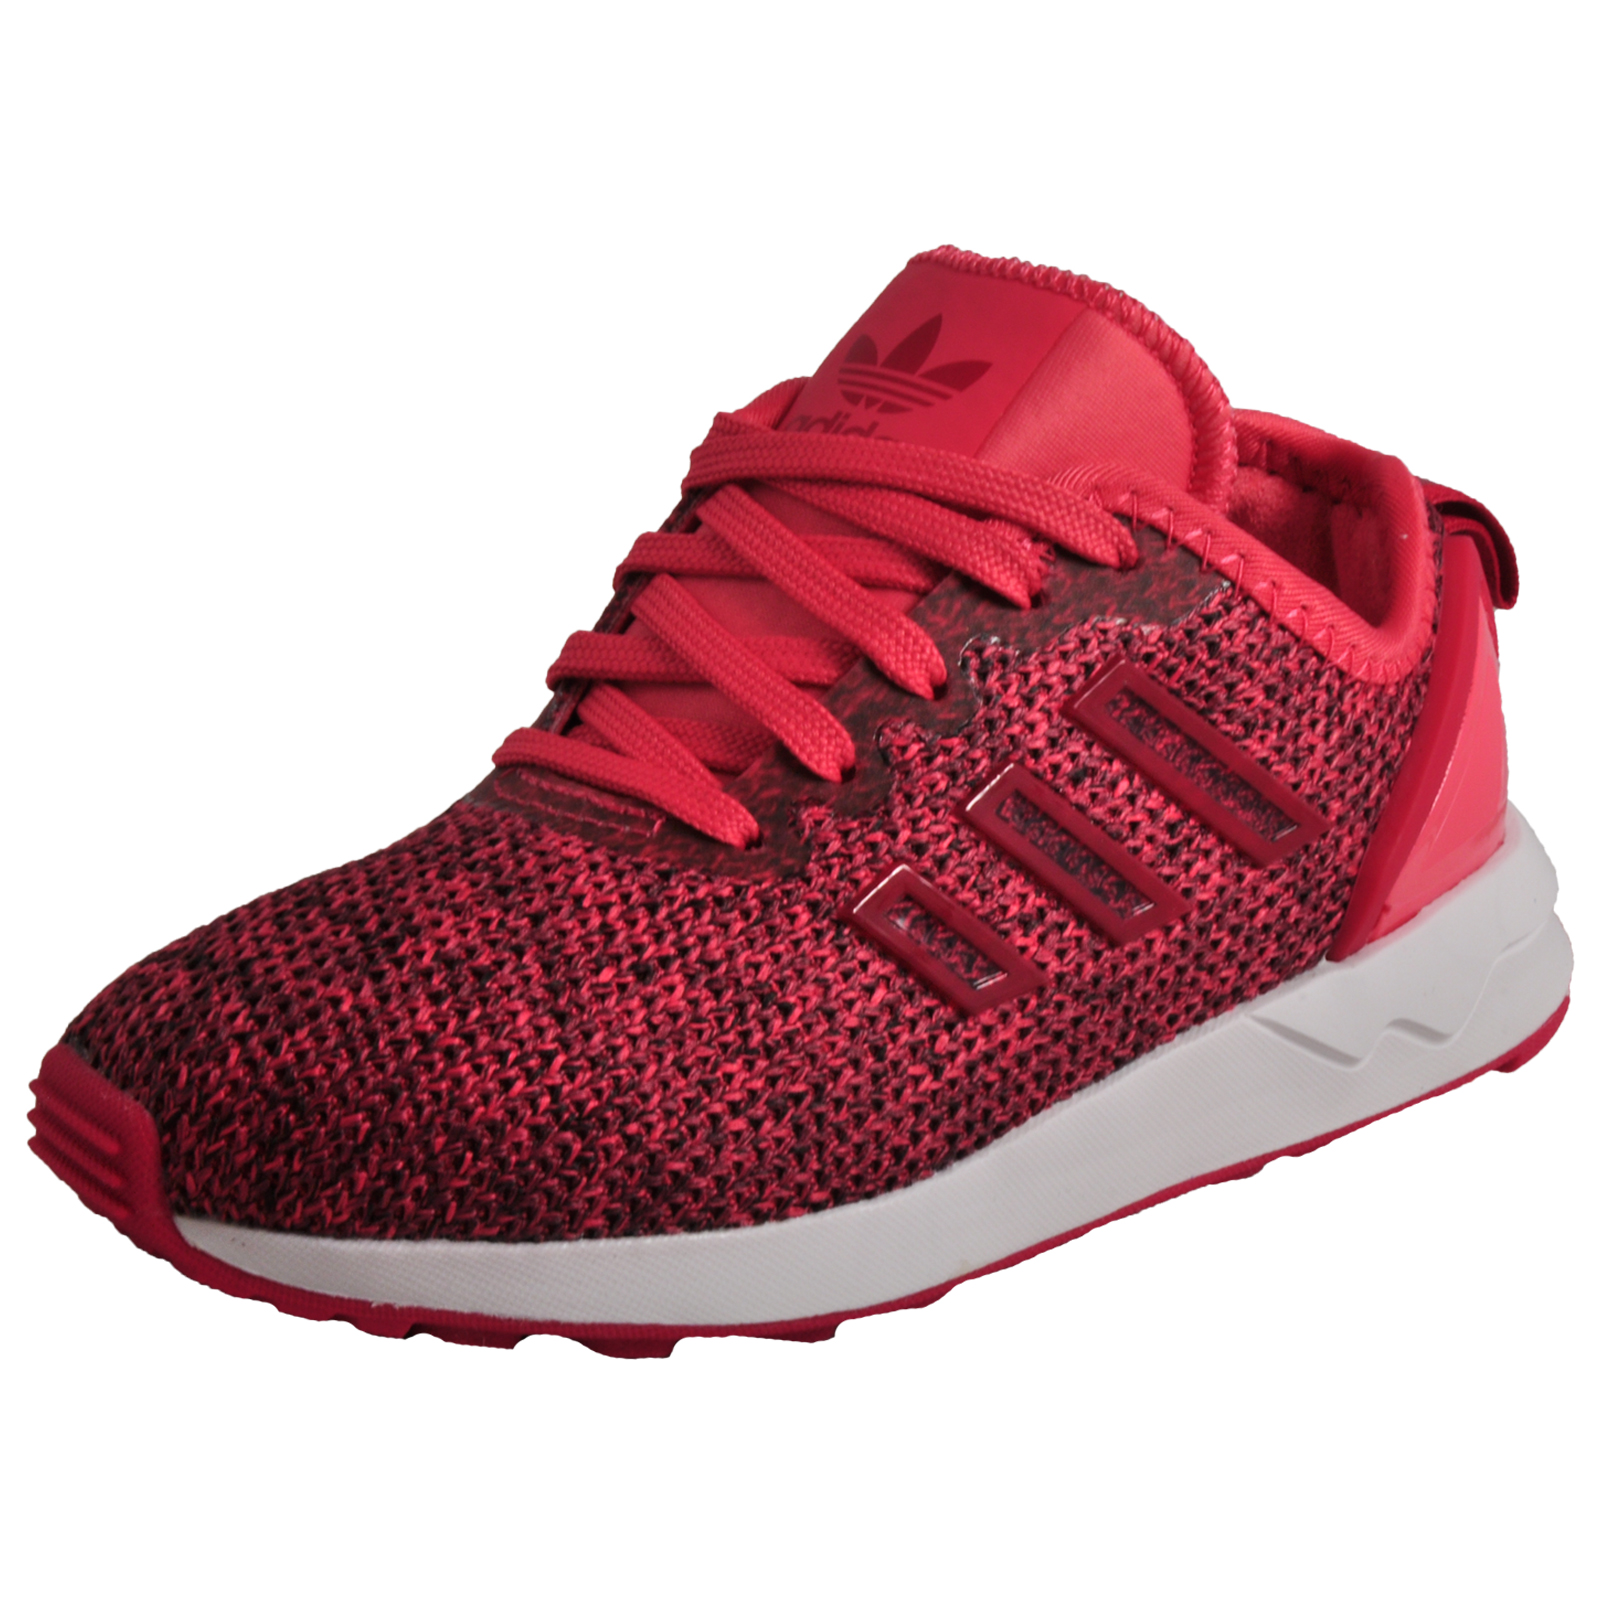 3bccbfea4 ... clearance adidas originals zx flux adv junior girls childs classic  casual trainers pink 86f3b b3f60 discount code for womens ...